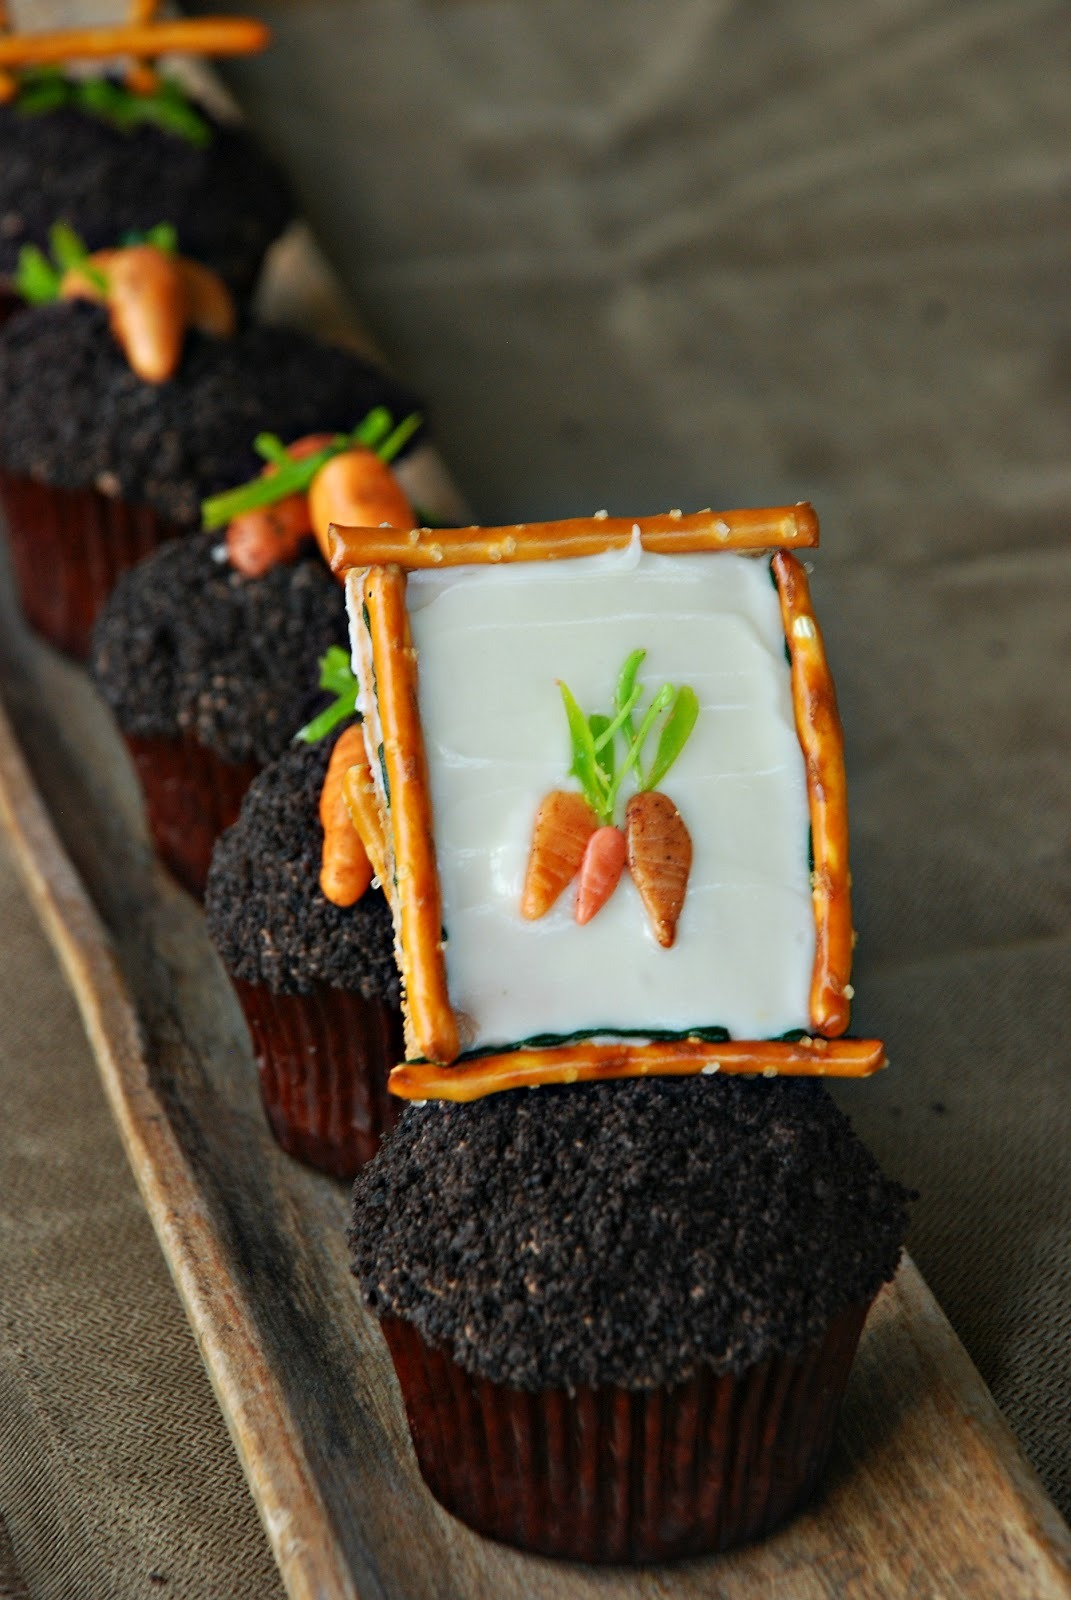 gastrogirl:  adorable garden party cupcakes.